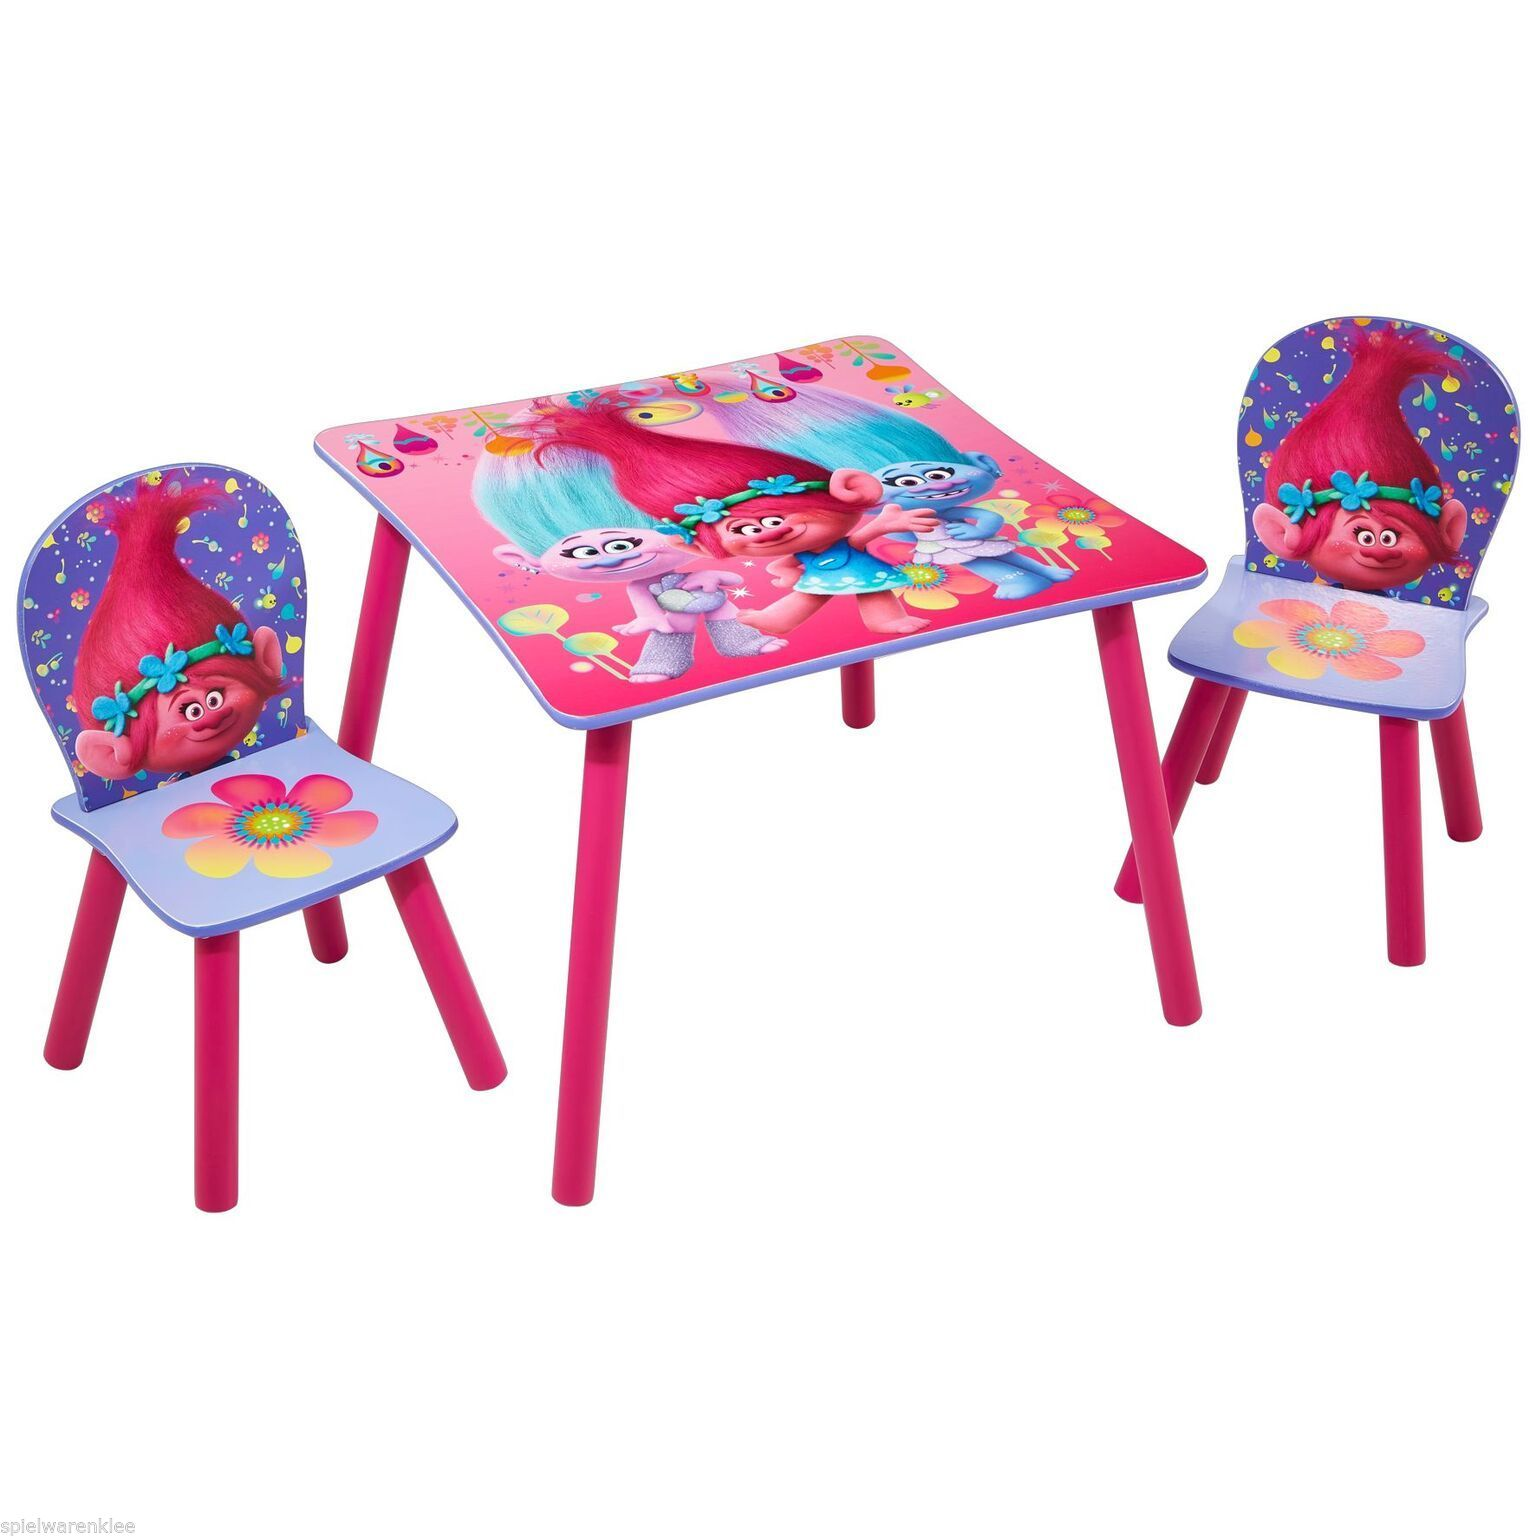 trolls sitzgruppe tisch st hle kinderm bel kindersitzgruppe kindertisch 527tro ebay. Black Bedroom Furniture Sets. Home Design Ideas